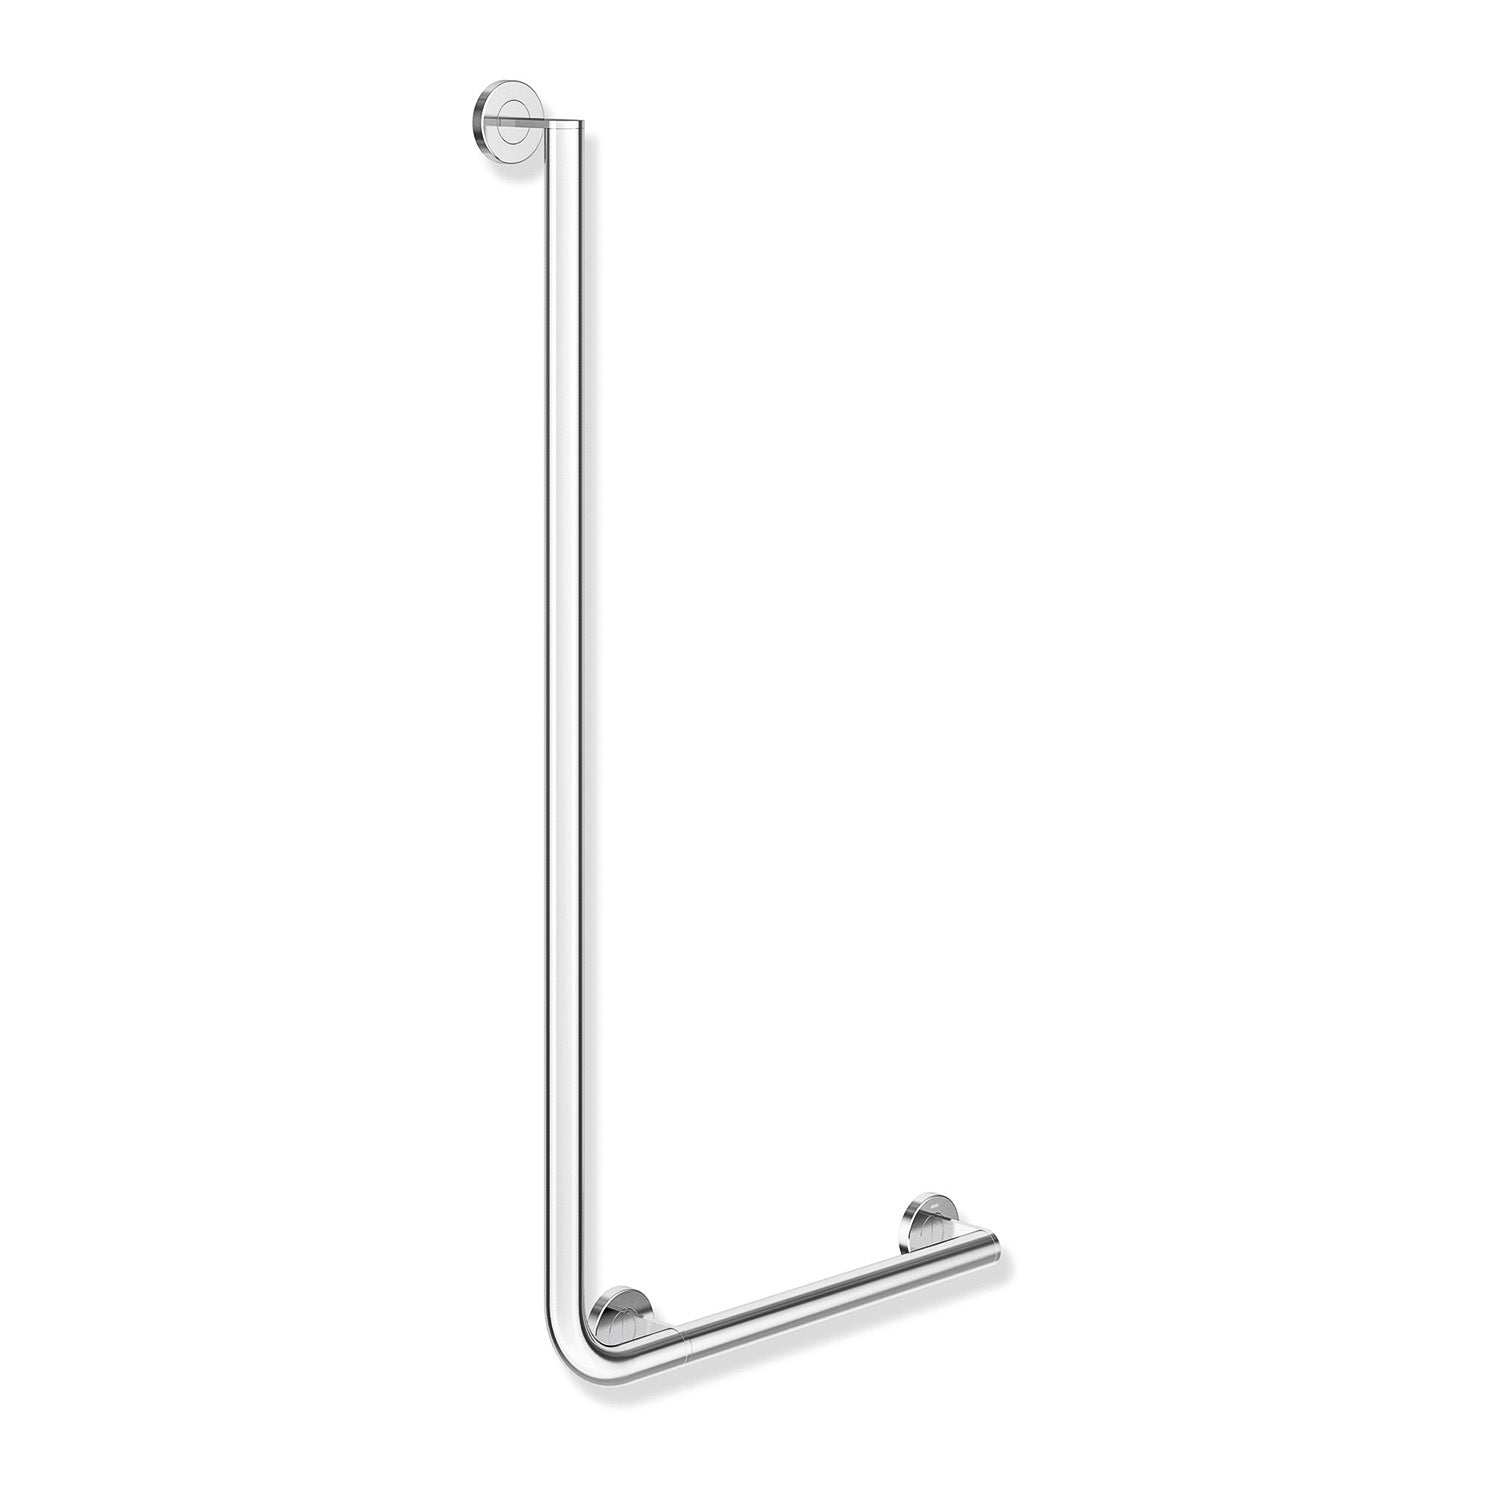 1000x500mm Right Handed Freestyle L Shaped Grab Rail with a chrome finish on a white background